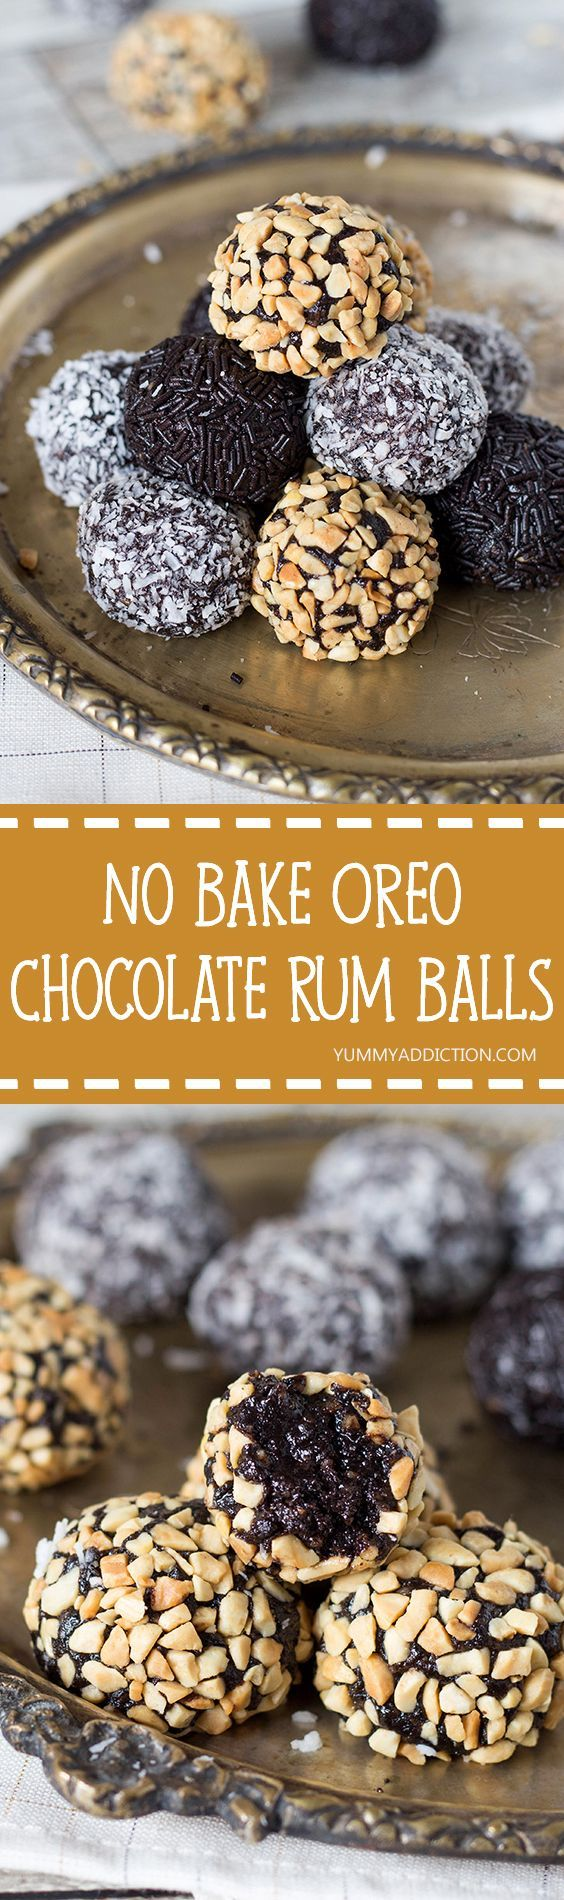 These Oreo Chocolate Rum Balls stuffed with walnuts will be the easiest thing you have ever made. They require no oven time at all, and are perfect for serving the guests! | yummyaddiction.com